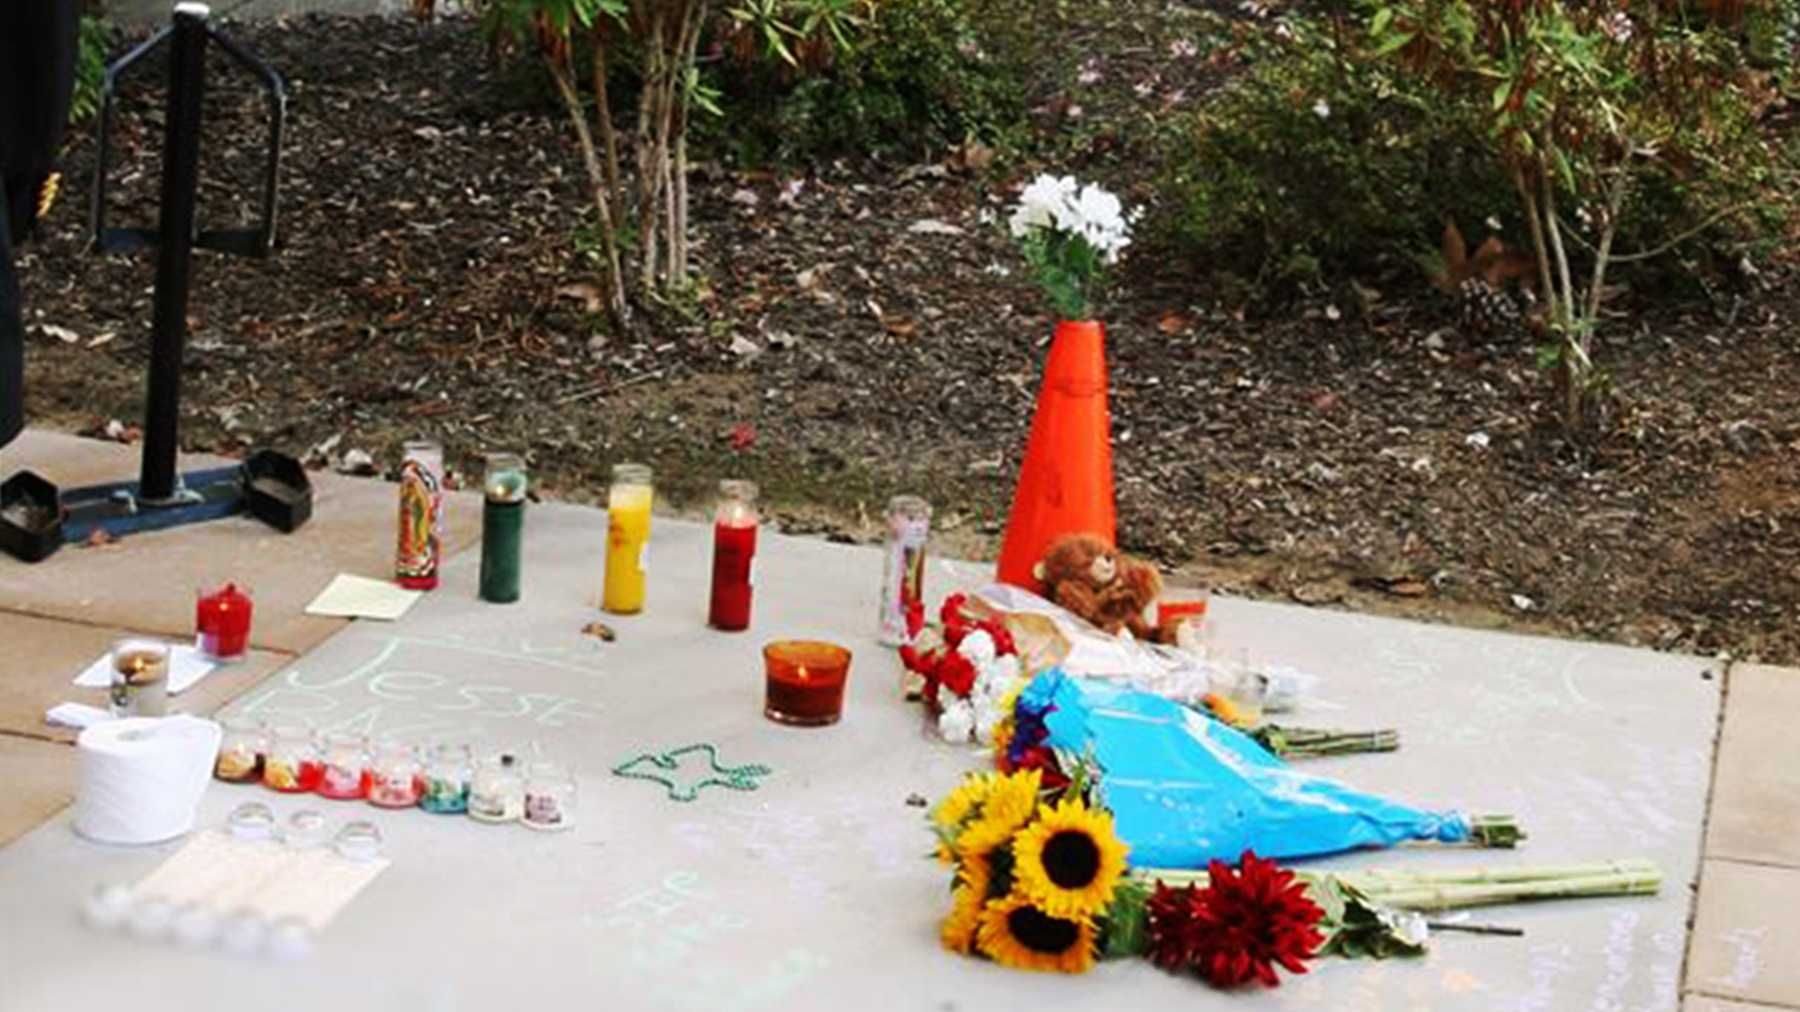 California State University Monterey Bay students made this memorial where Jesse Baza fell on campus.